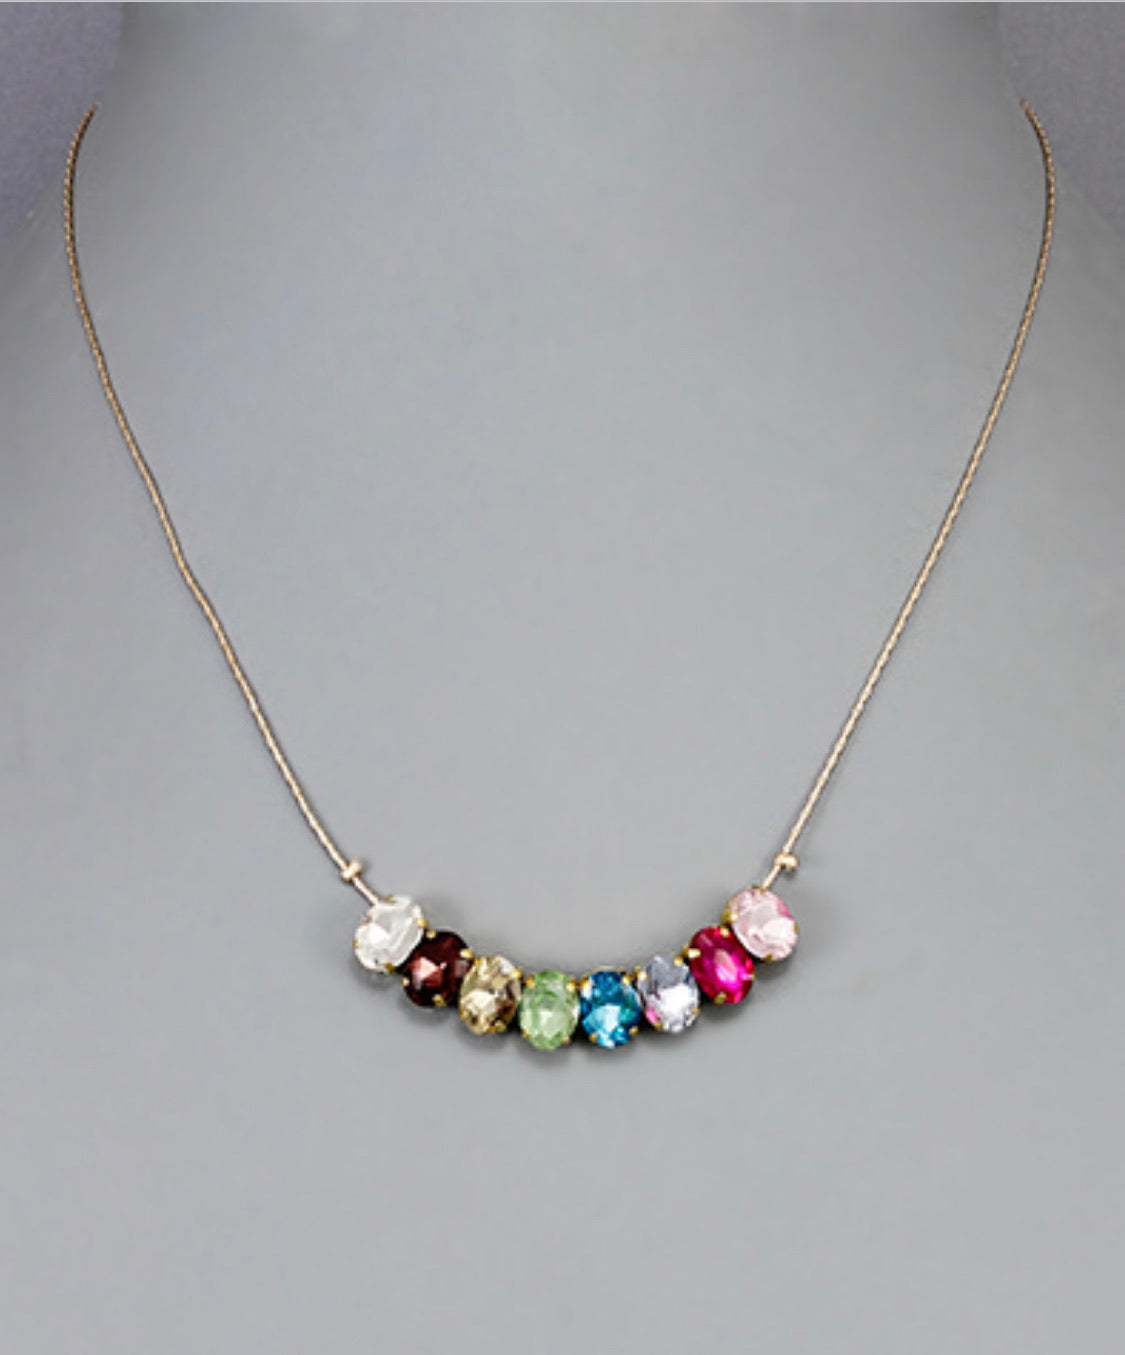 Necklace with Oval Sparkles - The Sock Dudes